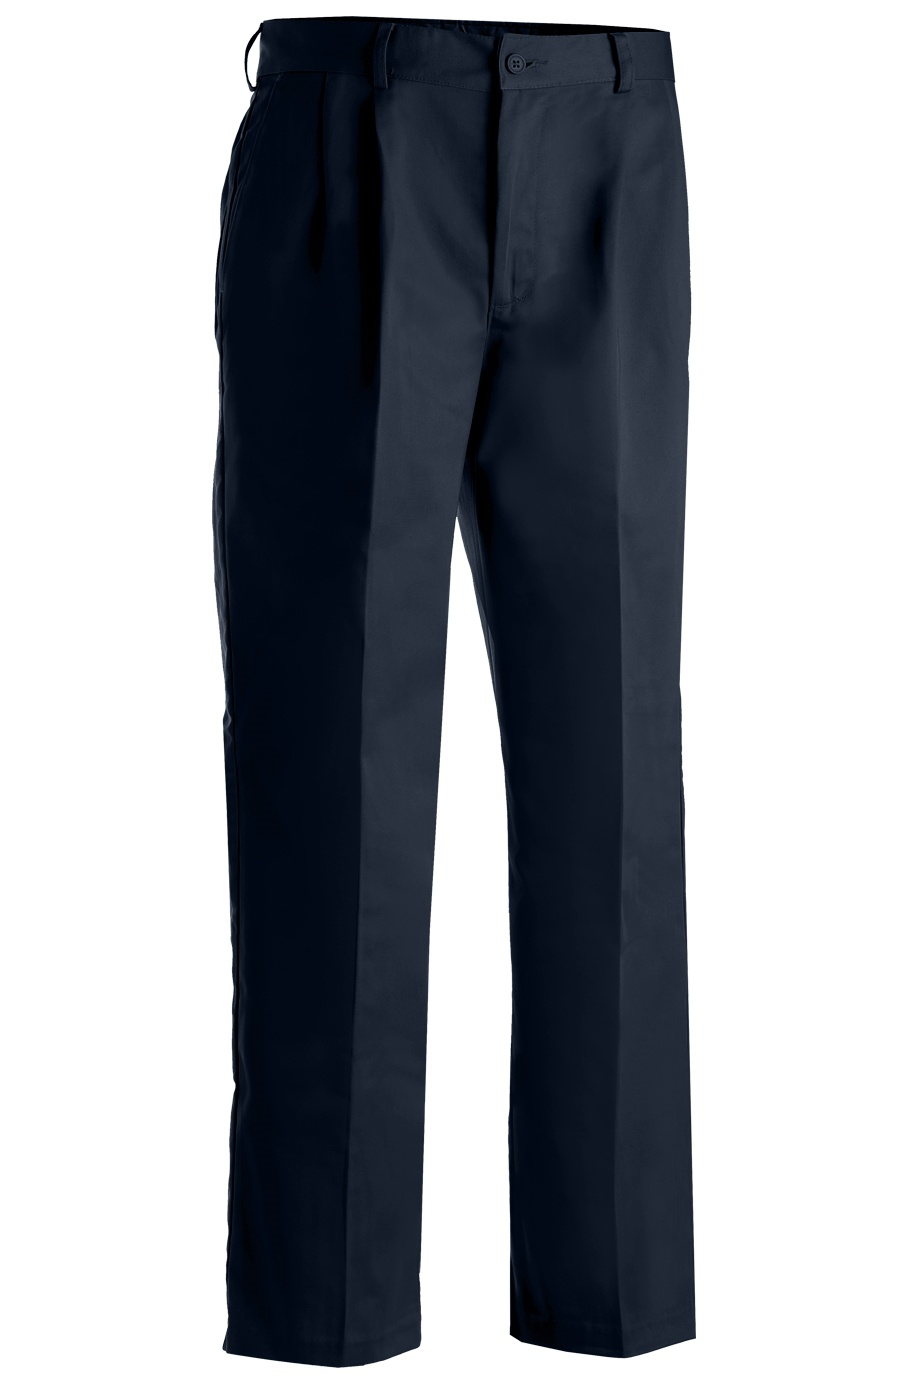 'Edwards 2677 Men's Utility Pleated Front Chino Pant'